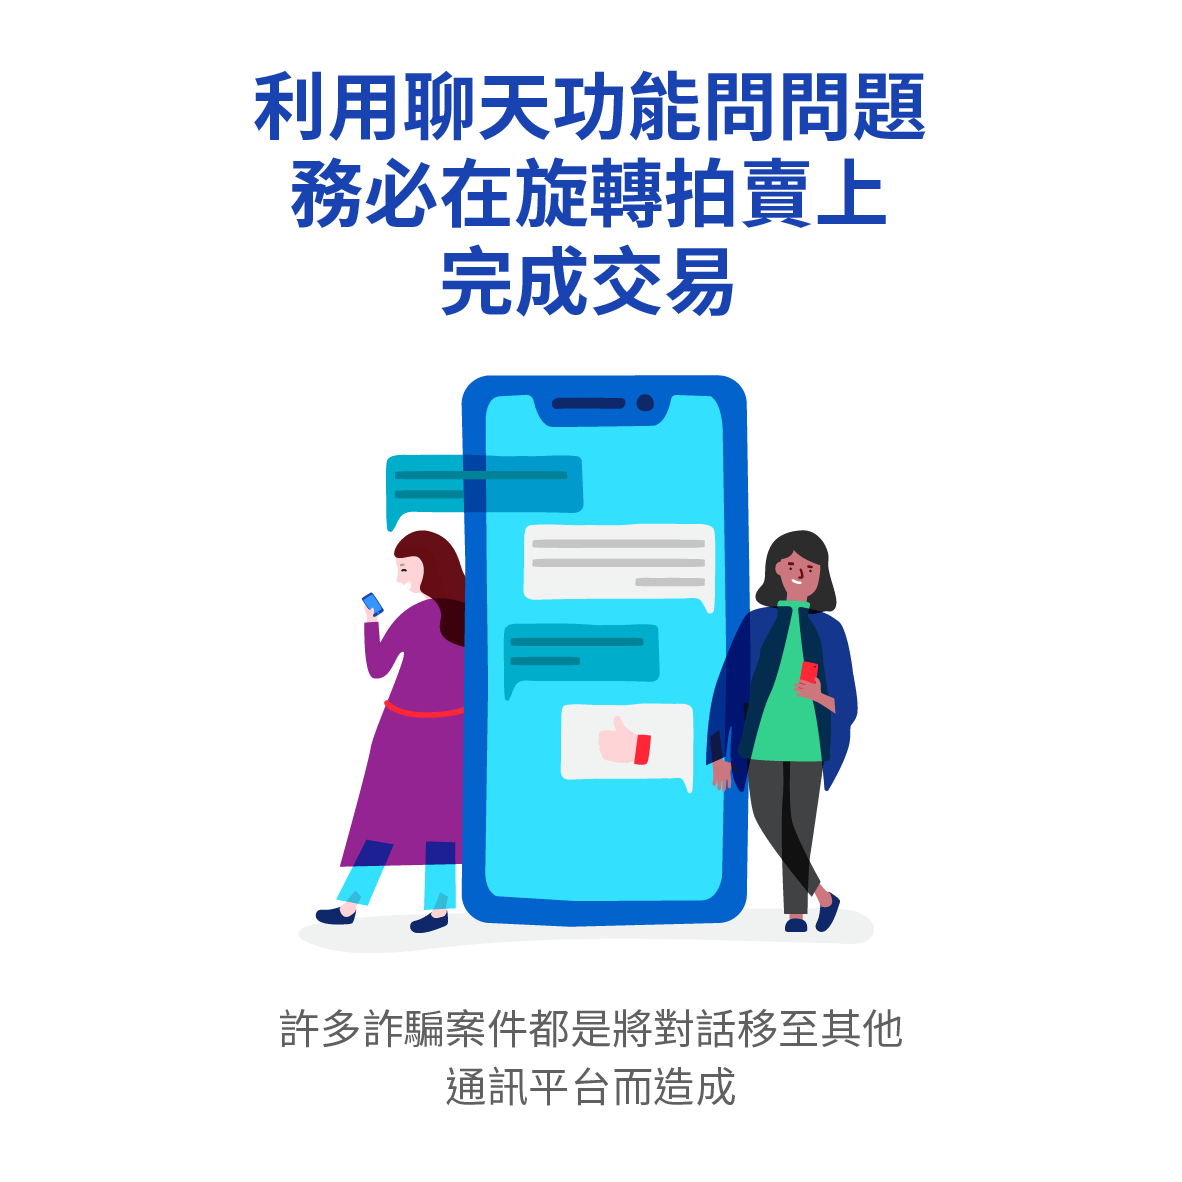 HelpCentre_How-to-deal-safely-on-Carousell_TW-2.png